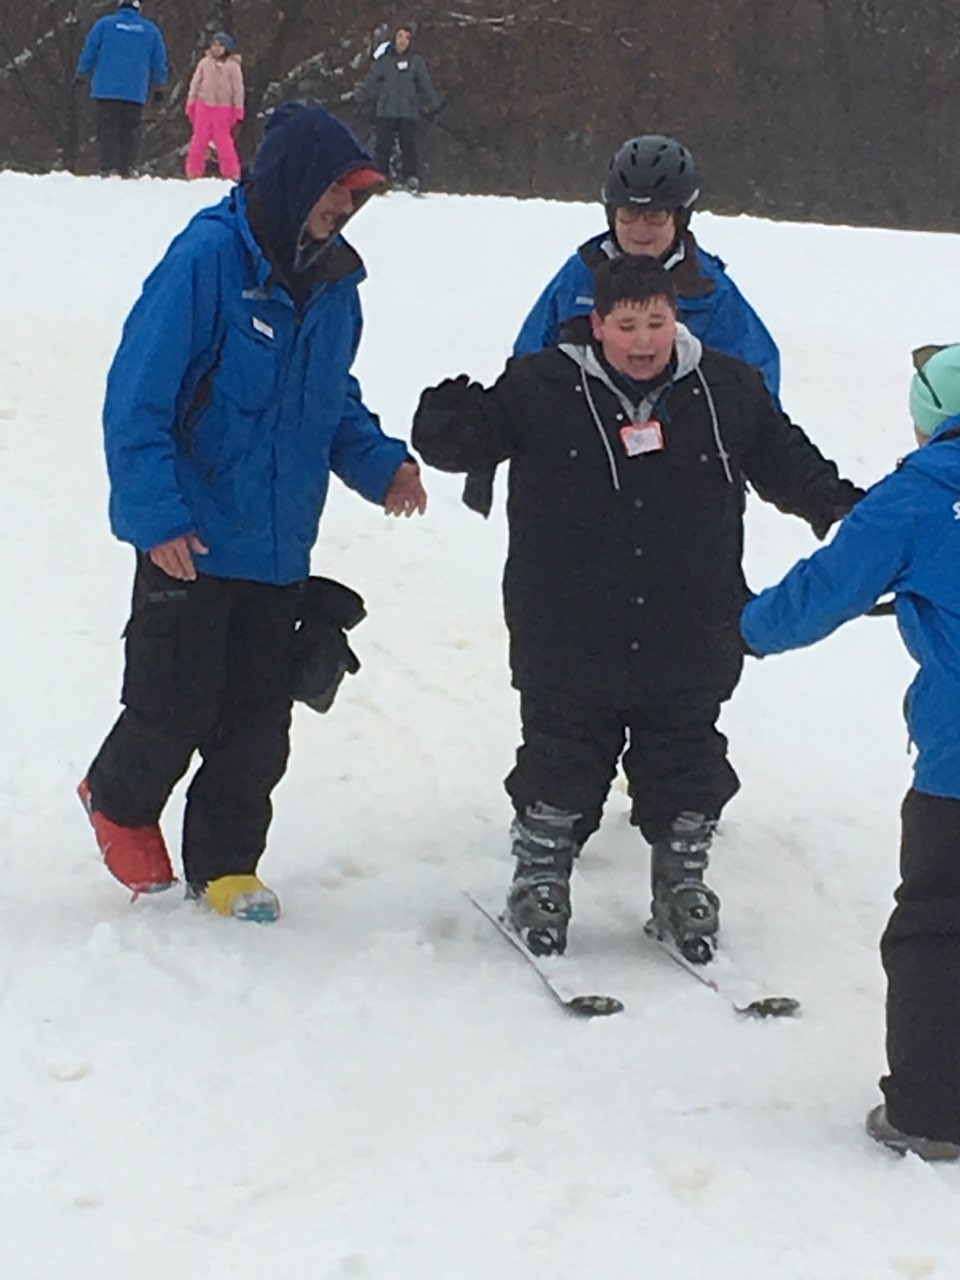 5th Grade students went to Snow Creek to ski!! What an amazing opportunity! We hope that everyone had a lot of fun! Photo Credit: Ms. Barry